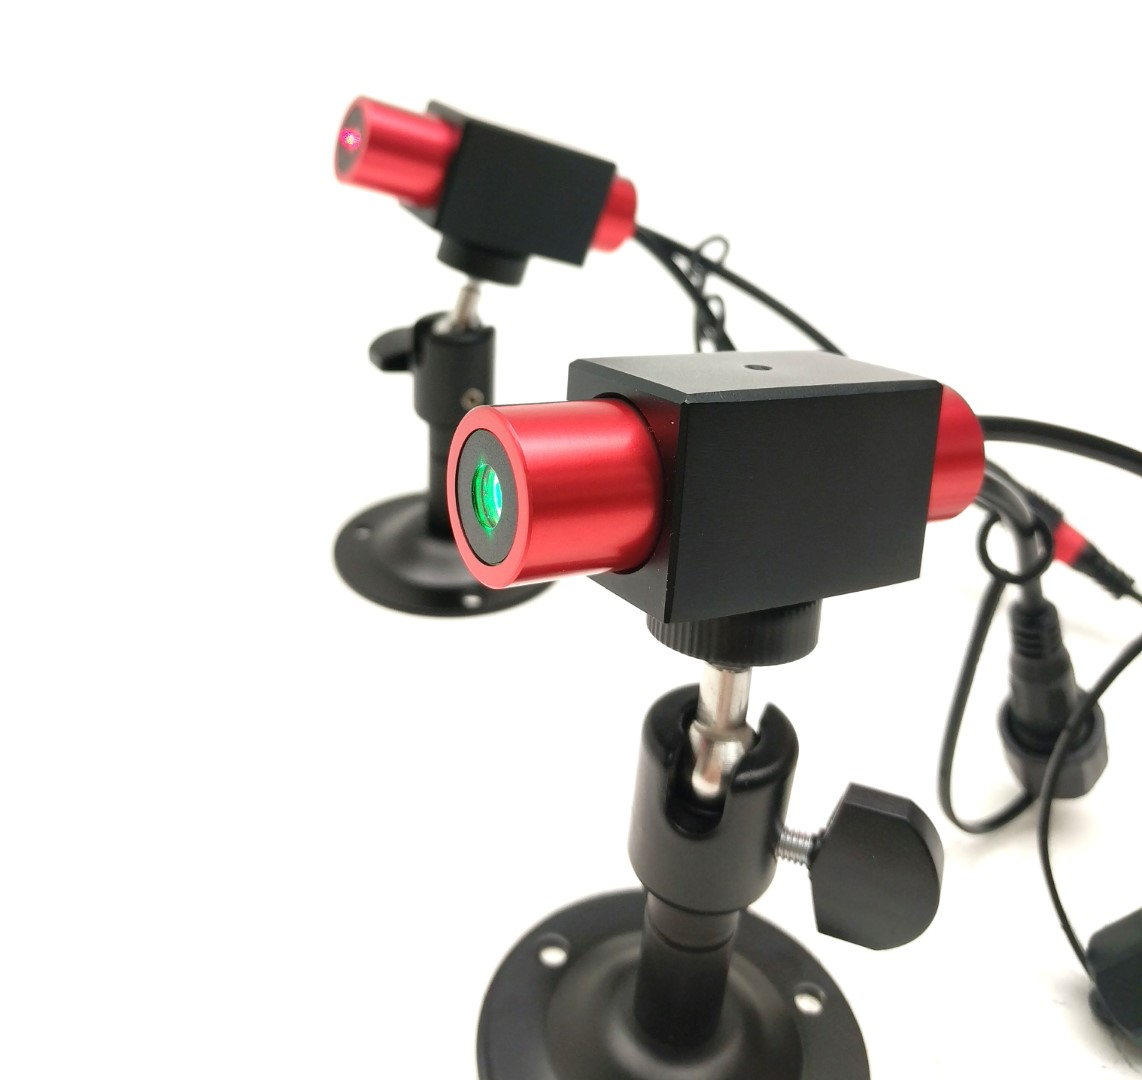 20 mW 635 nm Red Premium Structured Line No Central Dot Laser, 37° fan angle, adjustable focus, TTL+, Sealed IP67